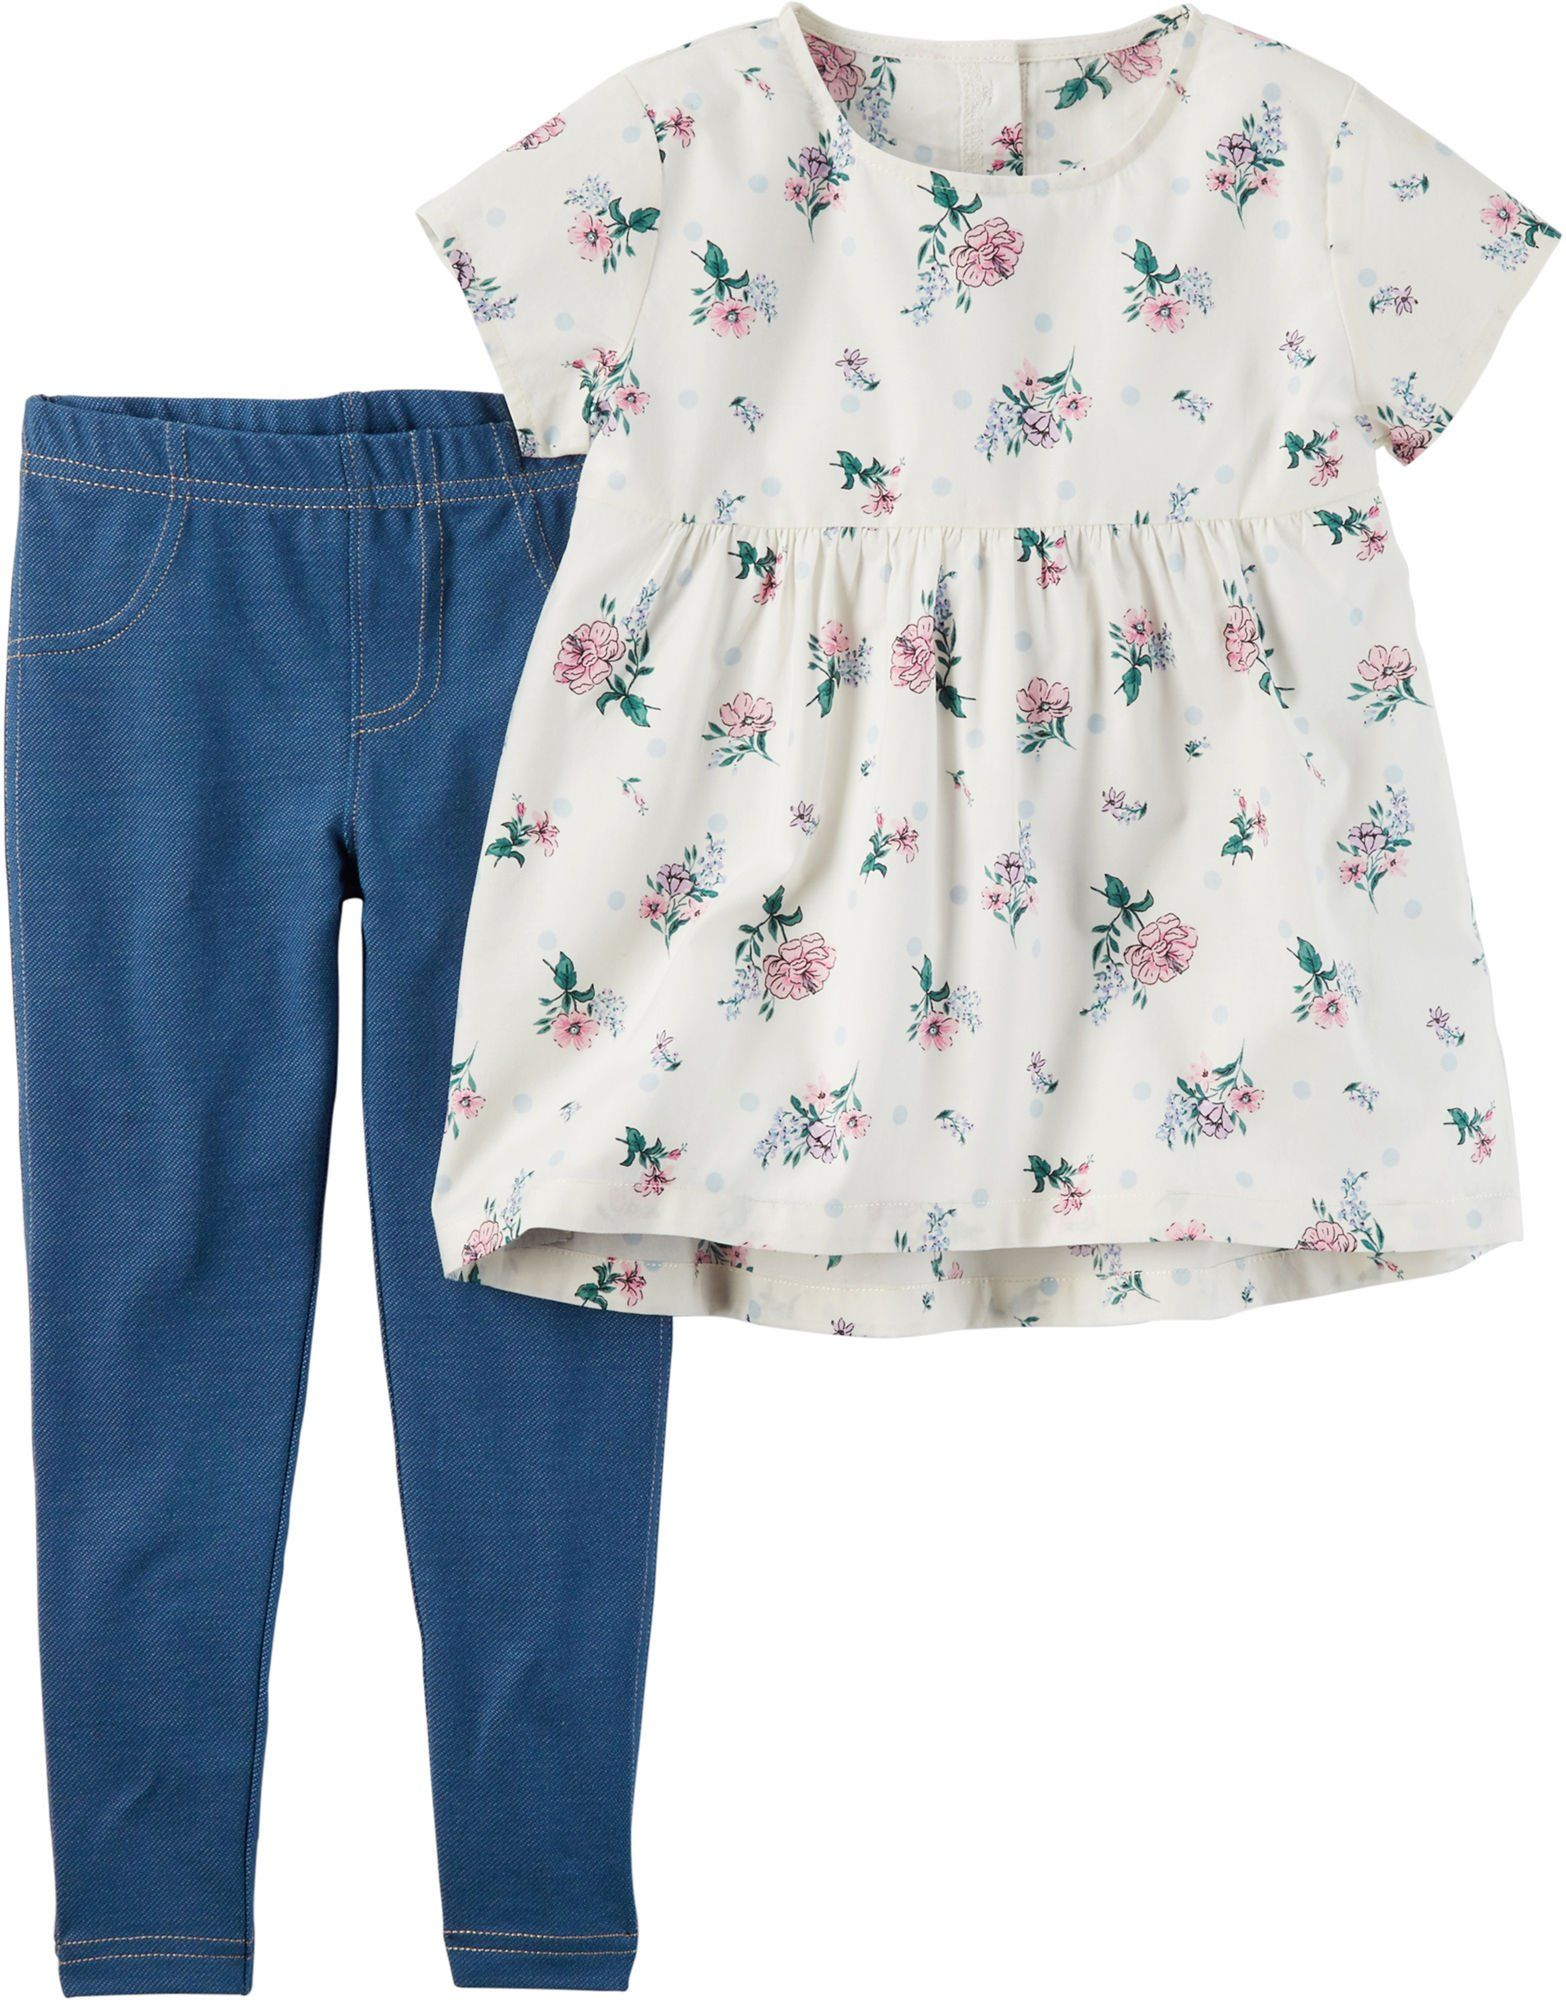 97745a239247 Carters Toddler Girls Floral Top Leggings Set 2T White/multi. Imported.  Machine Wash